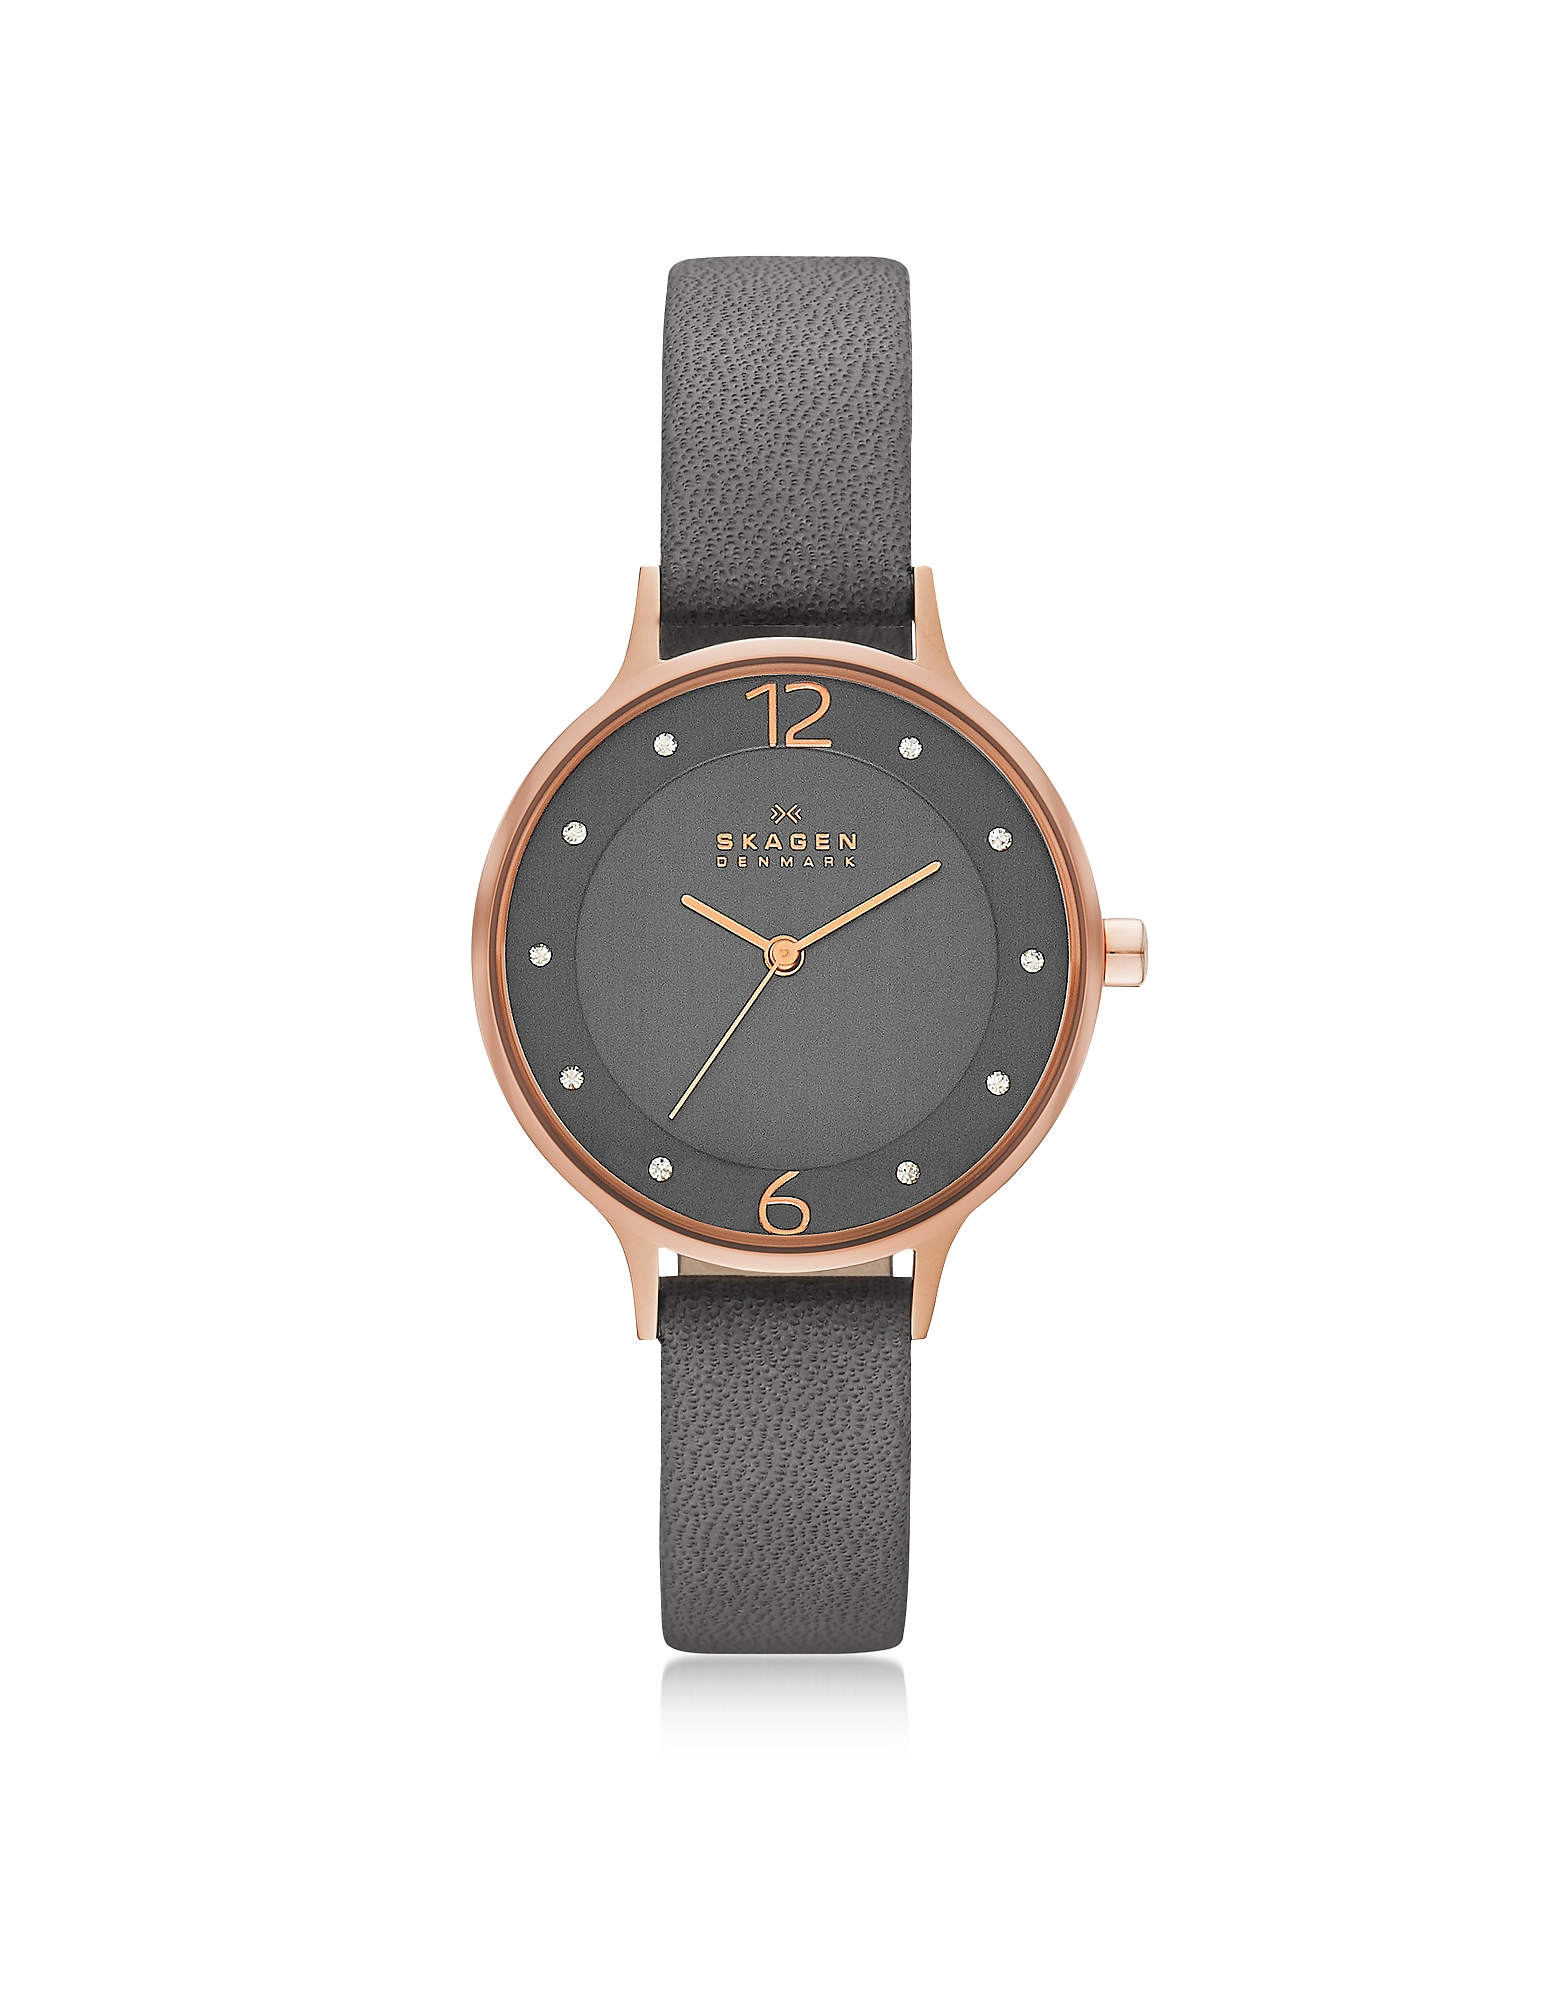 Skagen Women's Watches, Anita Rose Goldtone Stainless Steel Women's Watch w/Gray Leather Band